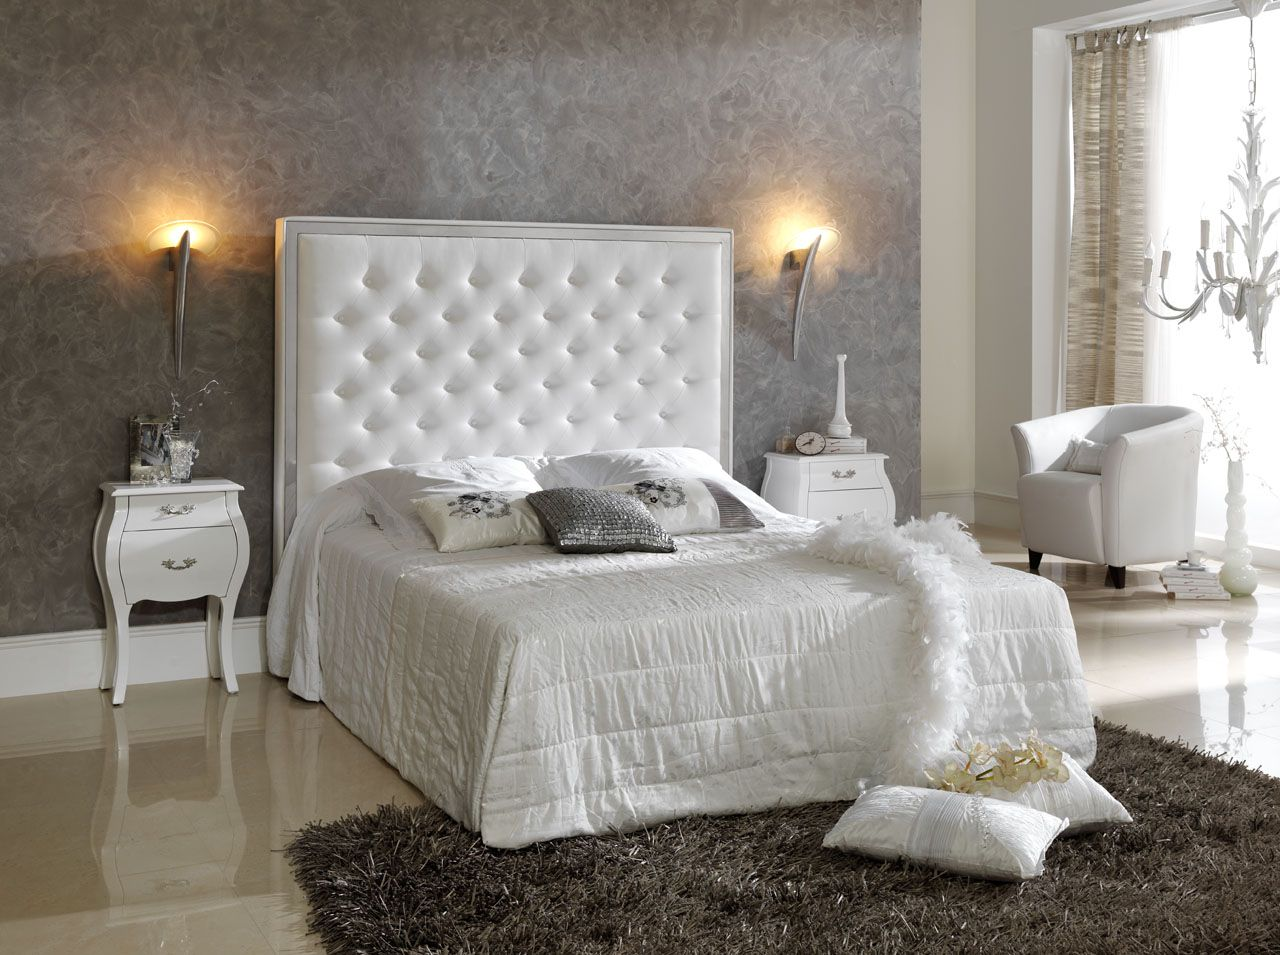 Headboards Designs tall headboards | bedroom and living room image collections